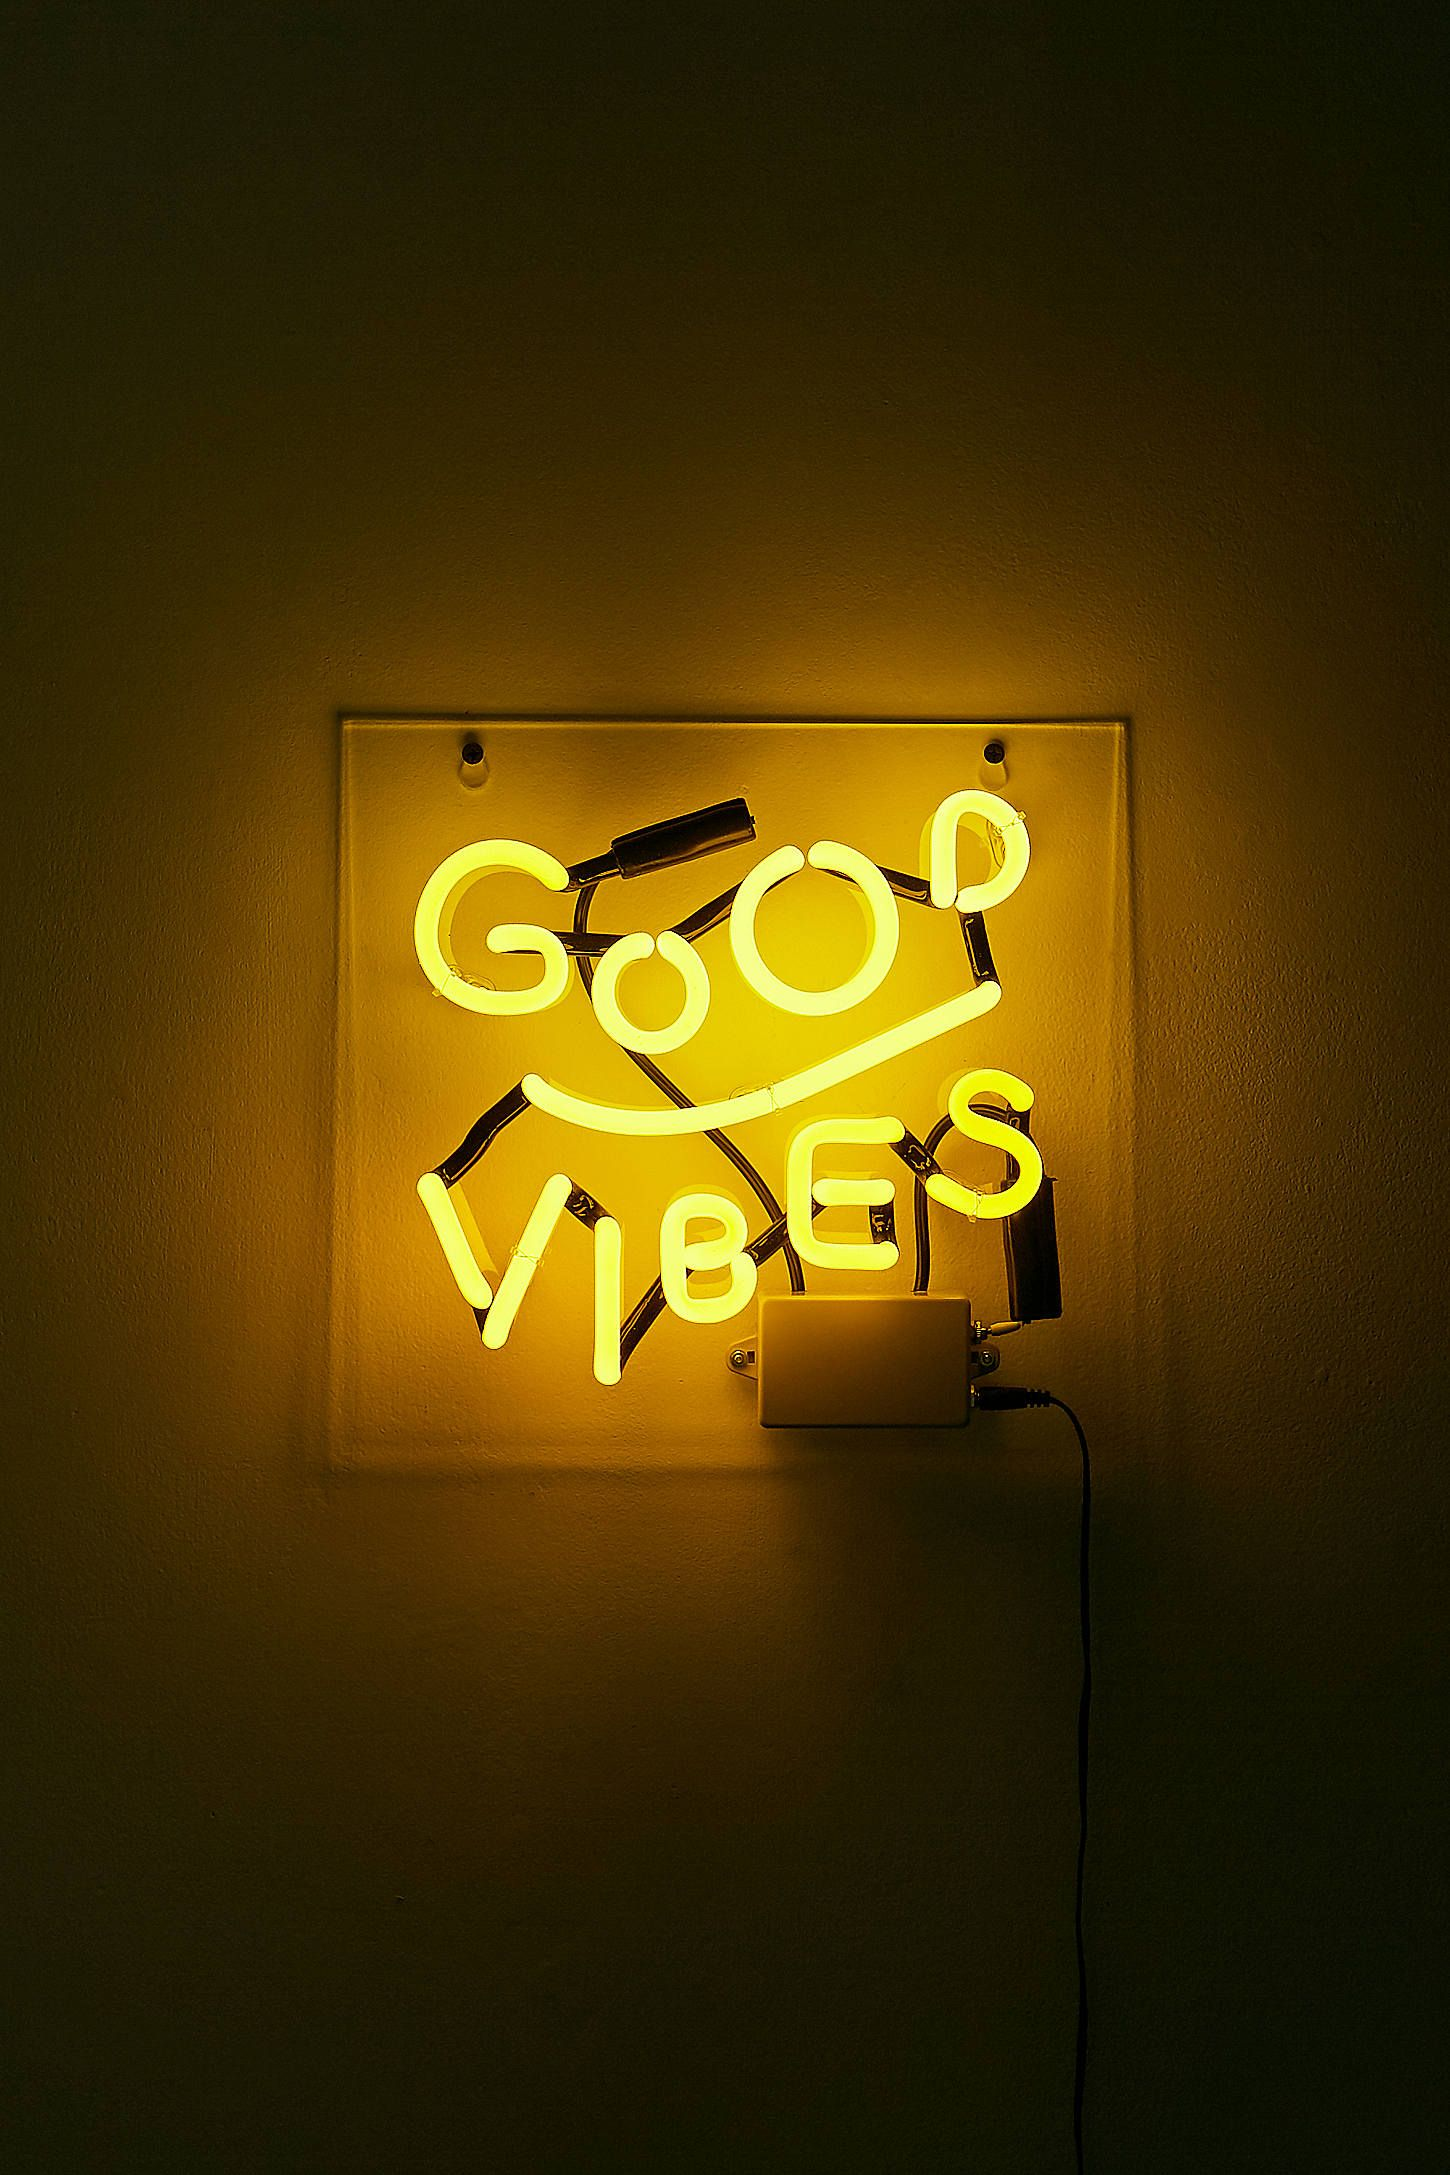 Good Vibes Neon Light Aesthetic Colors Yellow Wallpaper Yellow Aesthetic